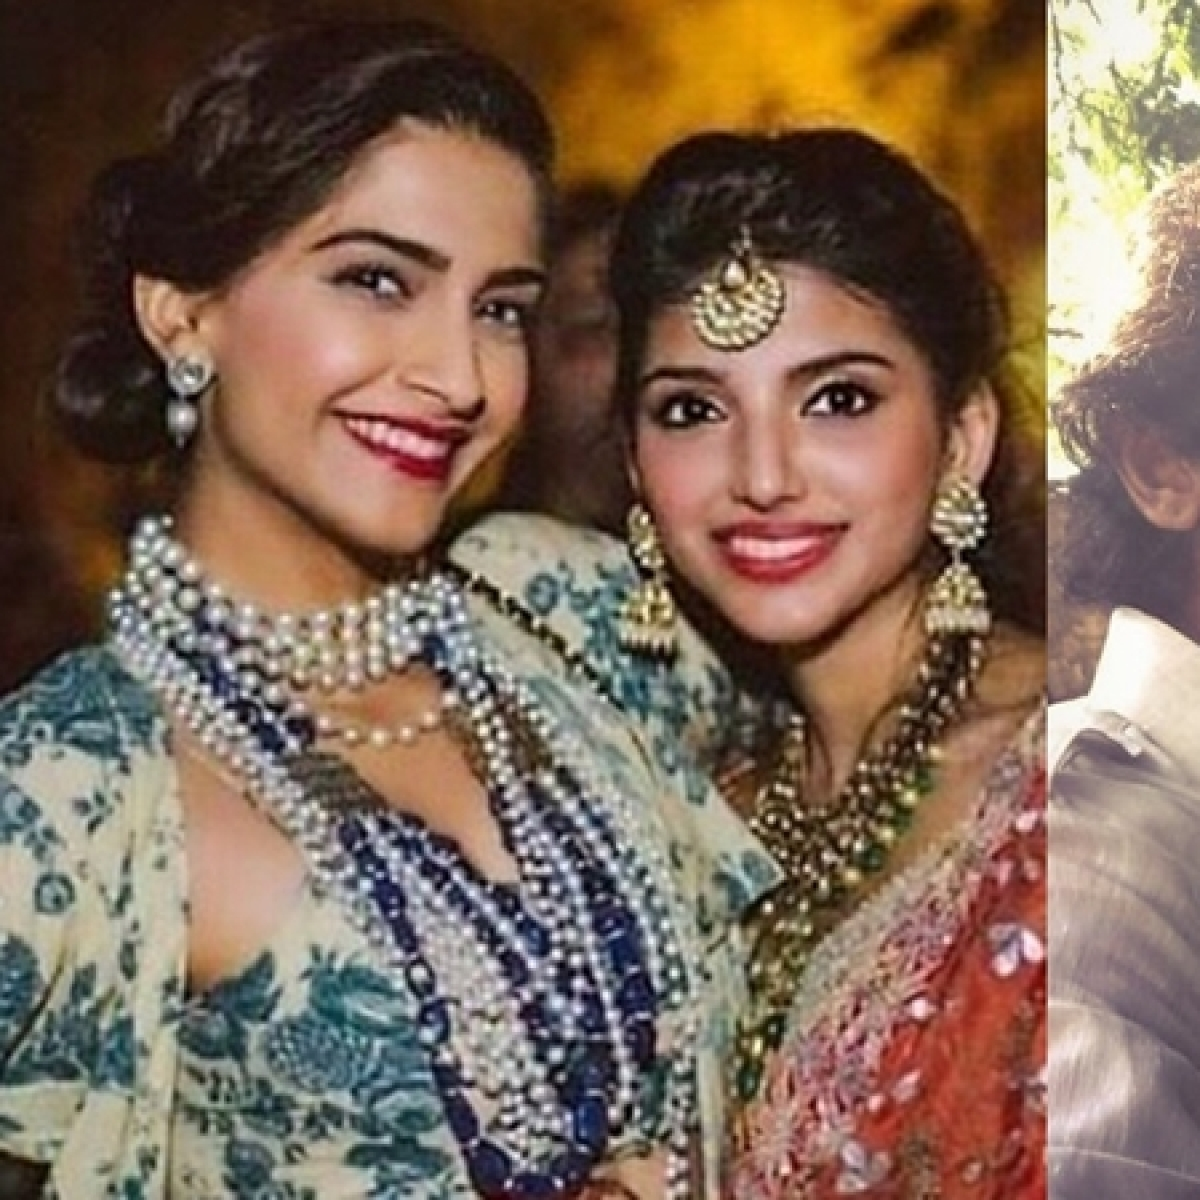 Here's how Rana Daggubati's fiancée Miheeka Bajaj is connected to Sonam Kapoor